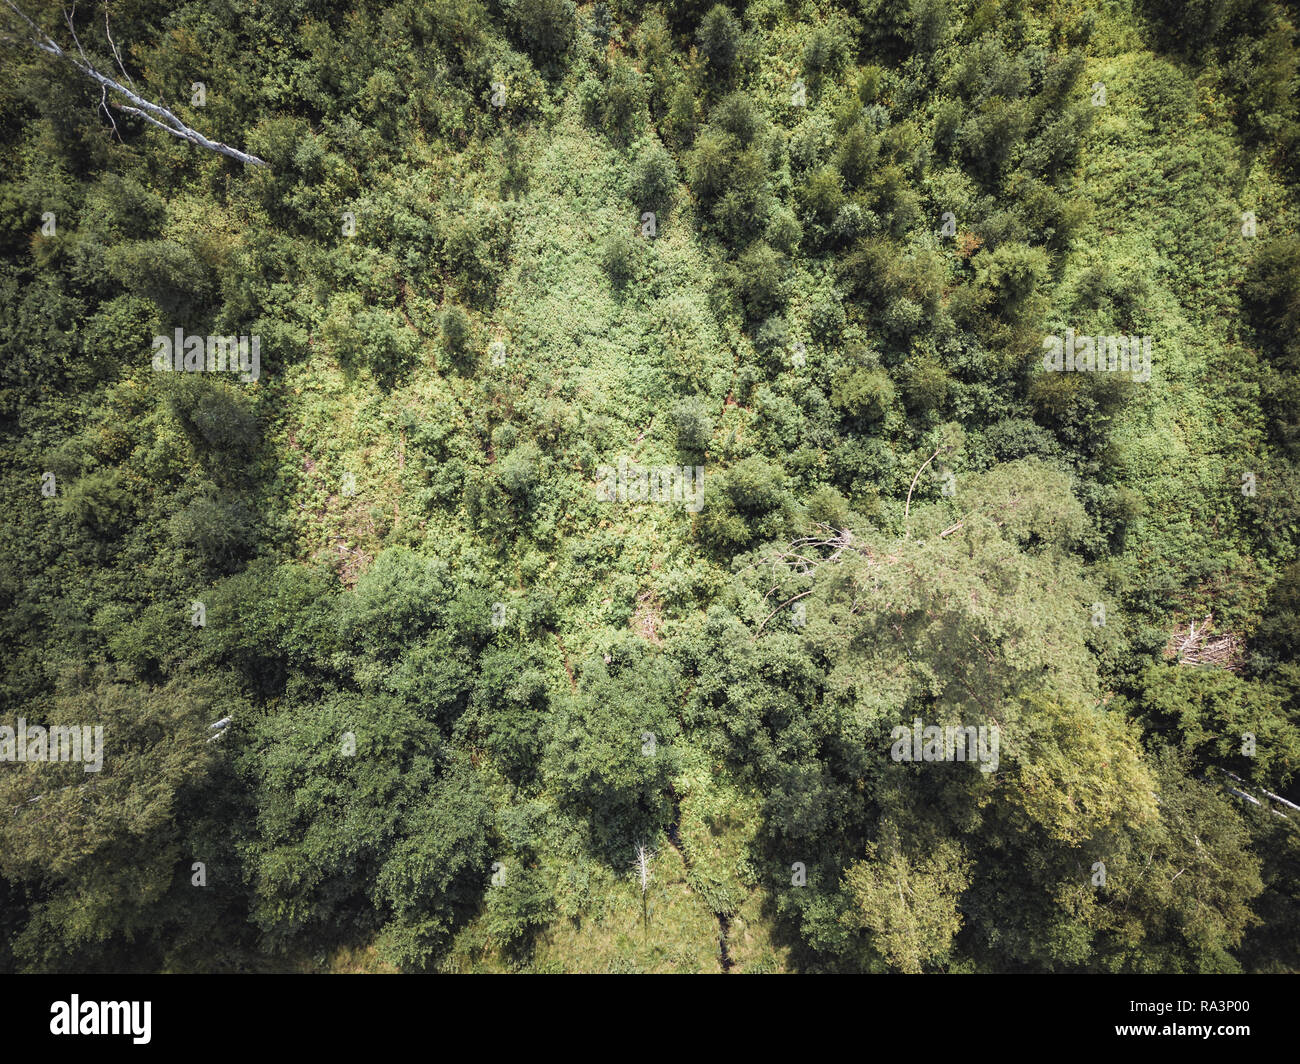 Aerial Drone Photo of the Countryside Forest, Top Down View in Sunny Summer Day - Background Material, Vintage Look Edit Stock Photo